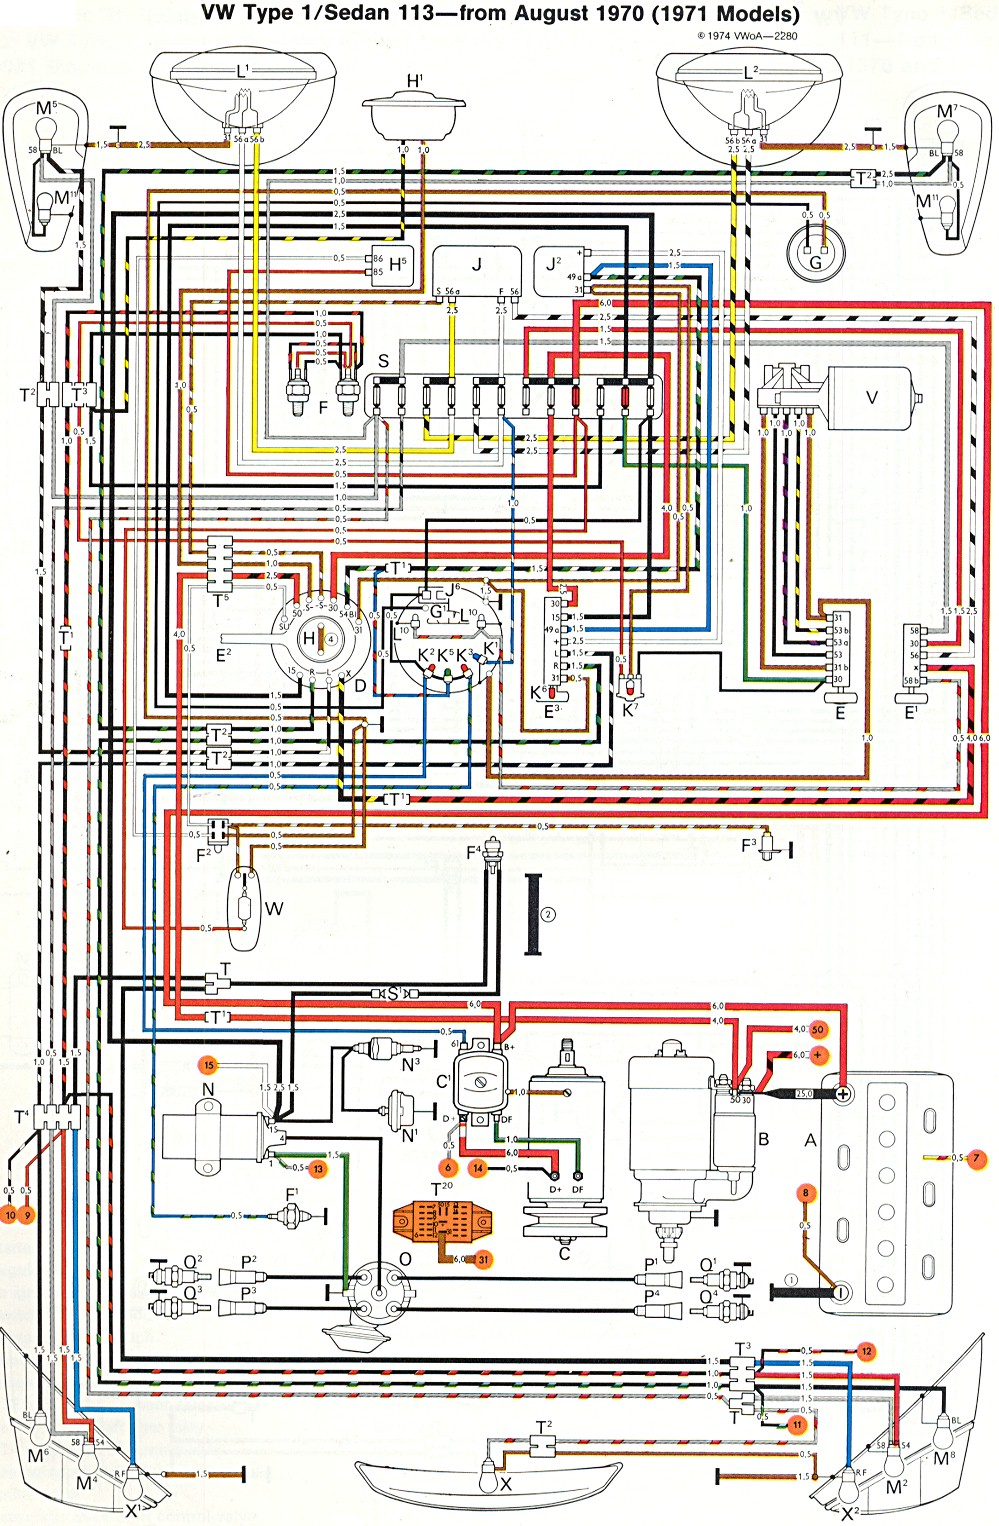 1971 VW Super Beetle Wiring Diagram on 1971 Vw Beetle Wiring Diagram